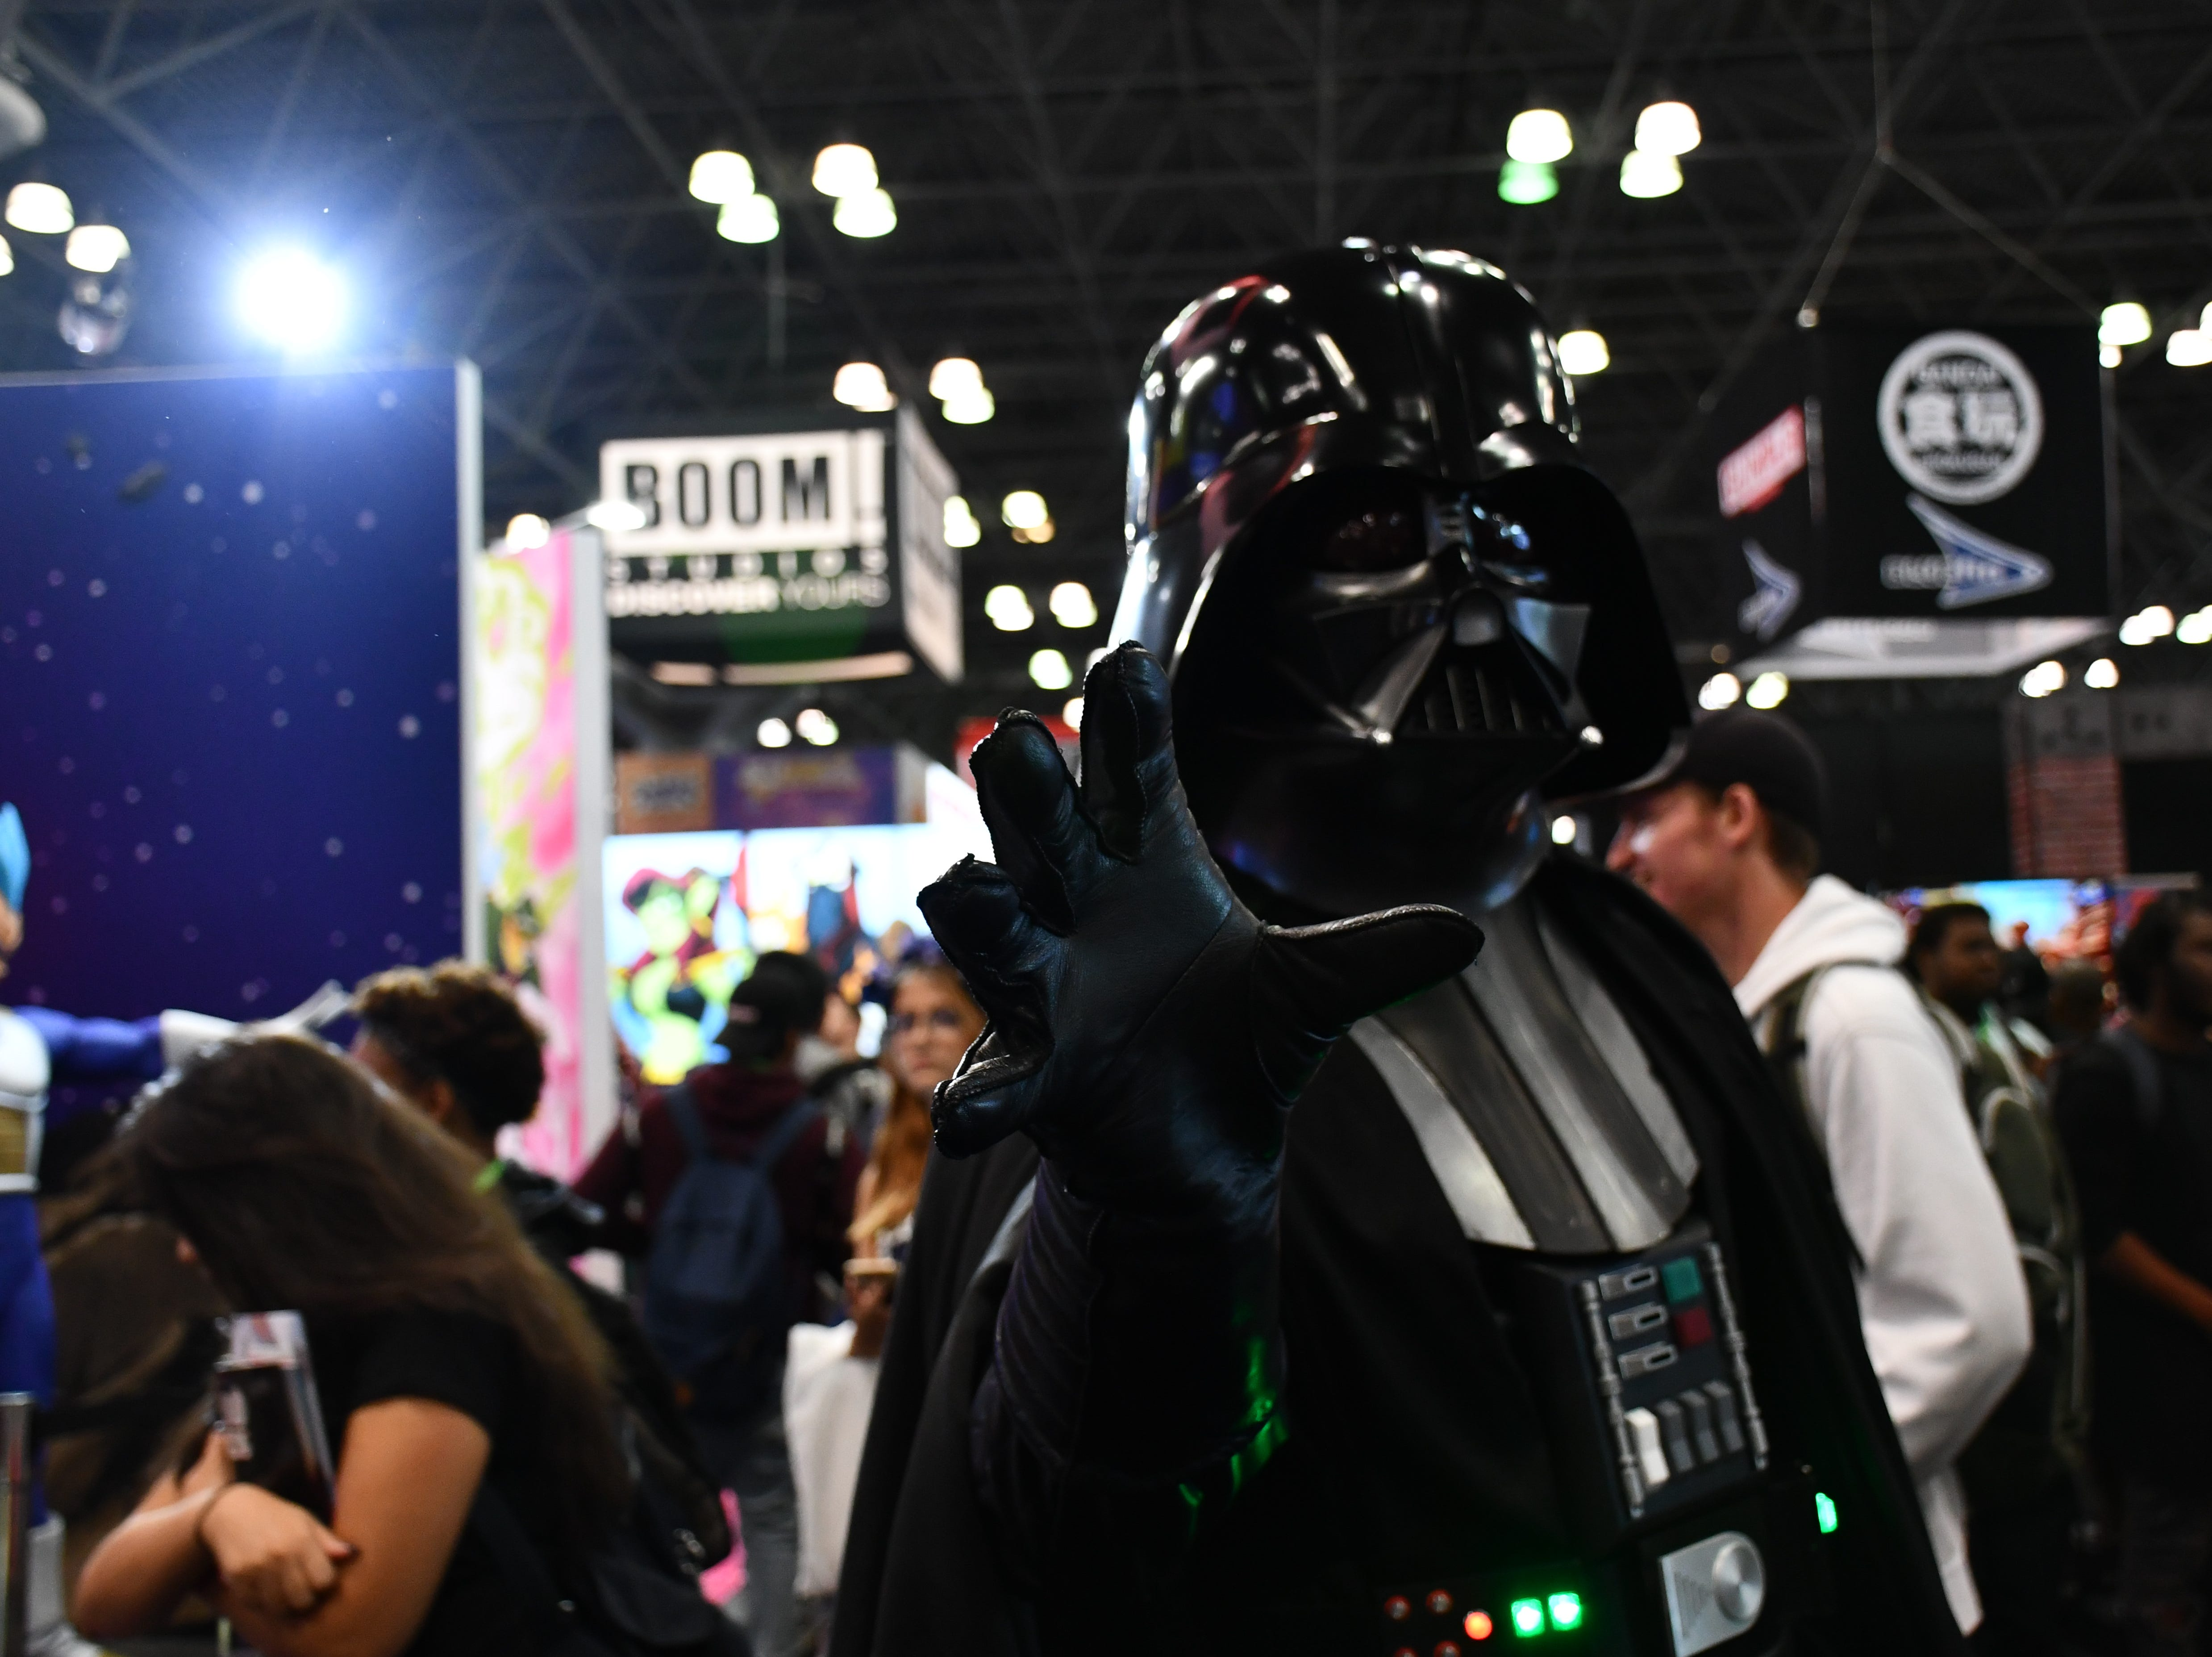 Scenes from Day 1 of the New York Comic Con at the Jacob K. Javits Convention Center in New York City on Thursday, Oct. 4, 2018.